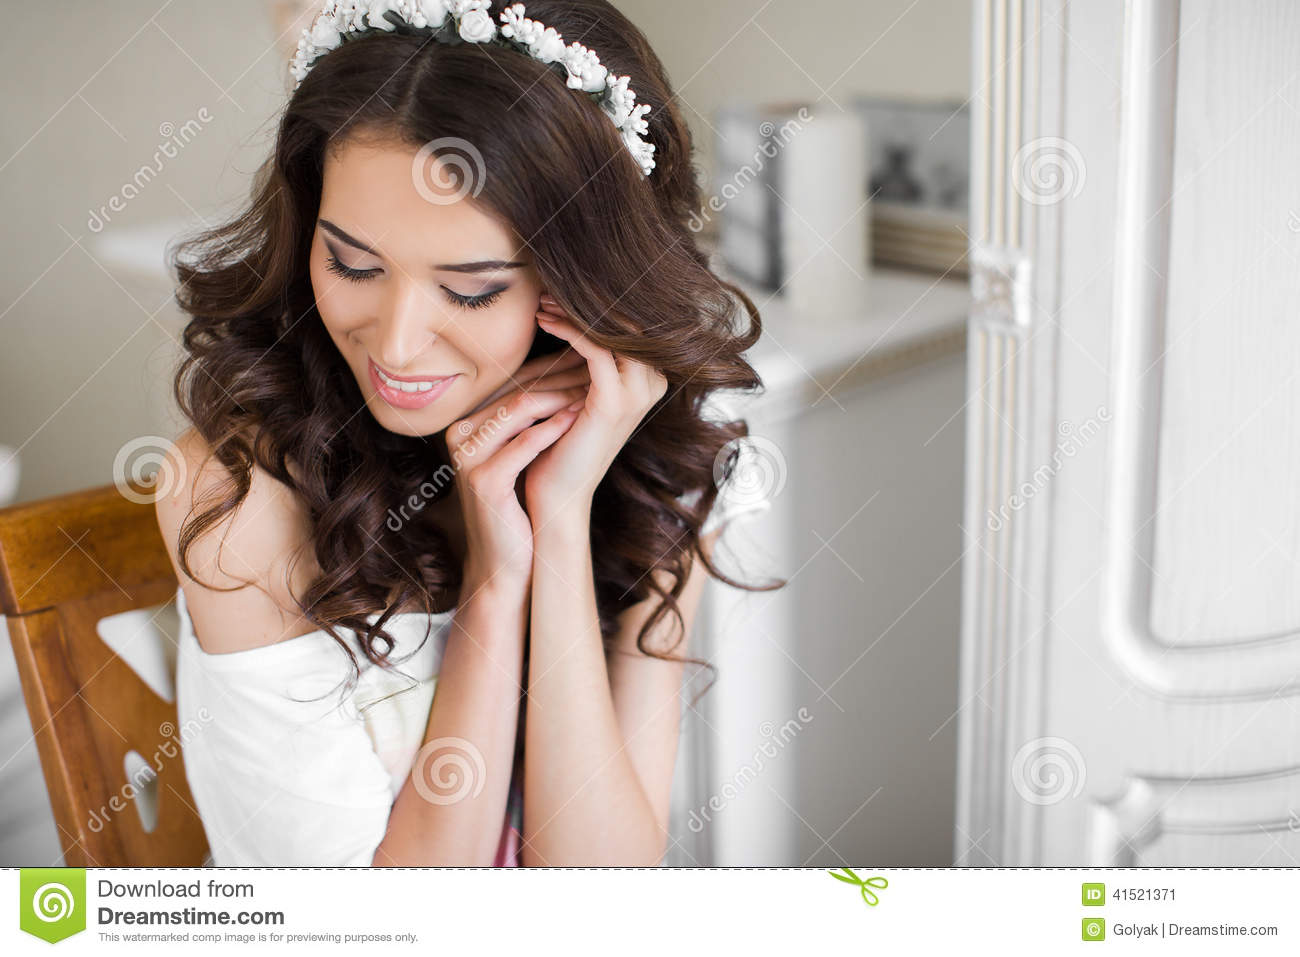 Beautiful young bride wedding makeup and hairstyle